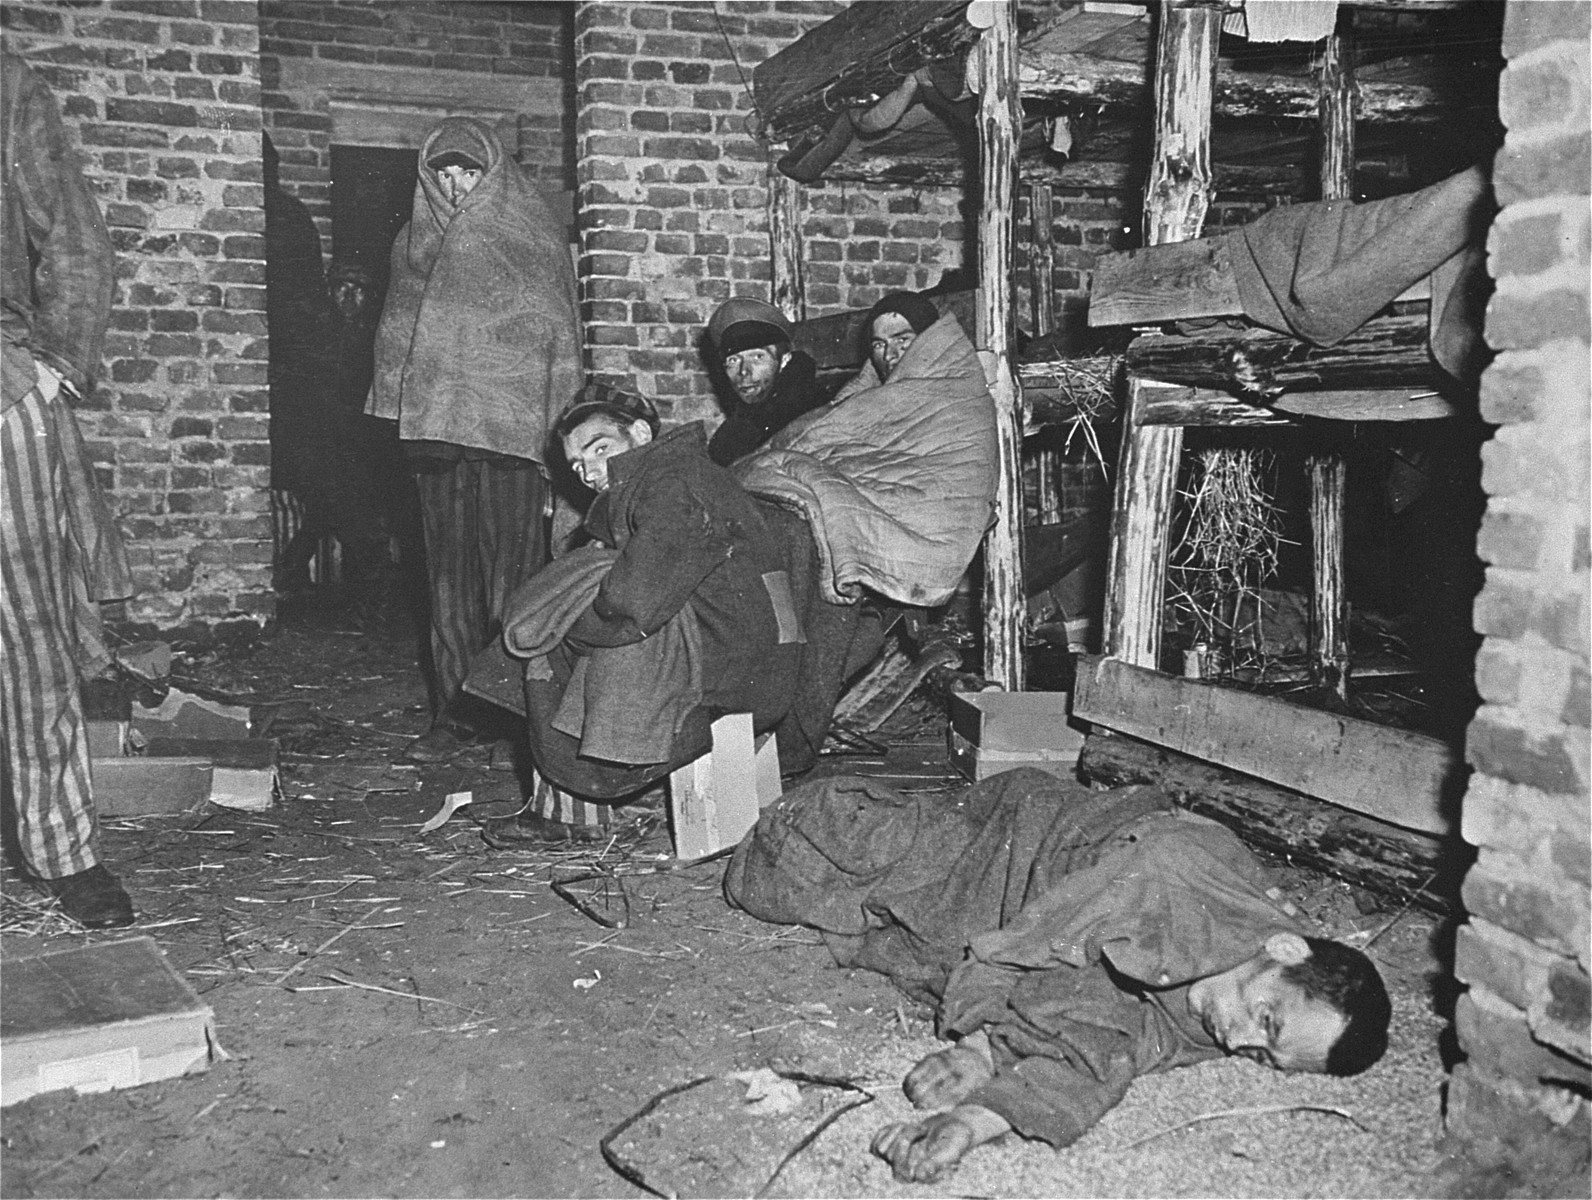 "Survivors wrapped in blankets sit among the dead inside of a barracks in Woebbelin.  The original Signal Corps caption reads, ""NEW NAZI HORROR CAMP DISCOVERED.  One of the worst Nazi concentration camps uncovered by Allied troops was liberated at Wobbelin, Germany, a small town five miles north of Ludwigslust and 90 miles northwest of Berlin.  Soldiers of three Allied units -- the 82nd U.S. Airborne Division, the Eighth Infantry Division of the Ninth U.S. Army and airborne troops of the Second British Army -- entered the camp and found sick, starving inmates barely surviving under indescribable conditions of filth and squalor.  They found hundreds of dead prisoners in one of the buildings while outside, in a yard, hundreds more  were found hastily buried in huge pits.  One mass grave contained 300 emaciated, disfigured corpses.  The dead included Poles, Russians, Frenchmen, Belgians, Dutchmen and Germans, all of whom had been working as slave laborers for the Nazis.  It is estimated that at least 150 of the original 4,000 prisoners succumbed daily, mostly from starvation and savage treatment at the hands of Nazi SS troops who operated the camp.   Some of the bodies found were burned almost beyond recognition and systematic torture of the inmates was revealed by the  physical condition of most of the survivors.  Military Government officers immediately ordered leading citizens of nearby Ludwigslust and other towns to march through the camp and witness the atrocities committed by representatives of the German Government.  Most of the civilians disclaimed any knowledge of the camp's existence despite the fact that many of the prisoners worked in the area.  The local residents later were made to exhume the bodies from the mass graves at the camp and provide decent, respectable interment of all dead prisoners.  Two hundred were buried in the public square of Ludwigslust May 7, 1945, and an equal number were buried in the garden of the highest Nazi official of Hagenow.  Eighty more were laid to rest in the town of Schwerin.  BIPPA                                                           EA 66648  THIS PHOTO SHOWS:  Blanket-wrapped prisoners at the Wobbelin camp huddle near the body of a dead comrade in one of the buildings used as sleeping quarters.  U.S. Signal Corps Photo ETO-HQ-45-45569.  SERVICED BY LONDON OWI (?)LIST B. CERTIFIED AS PASSED BY SHA?F CENSOR."""